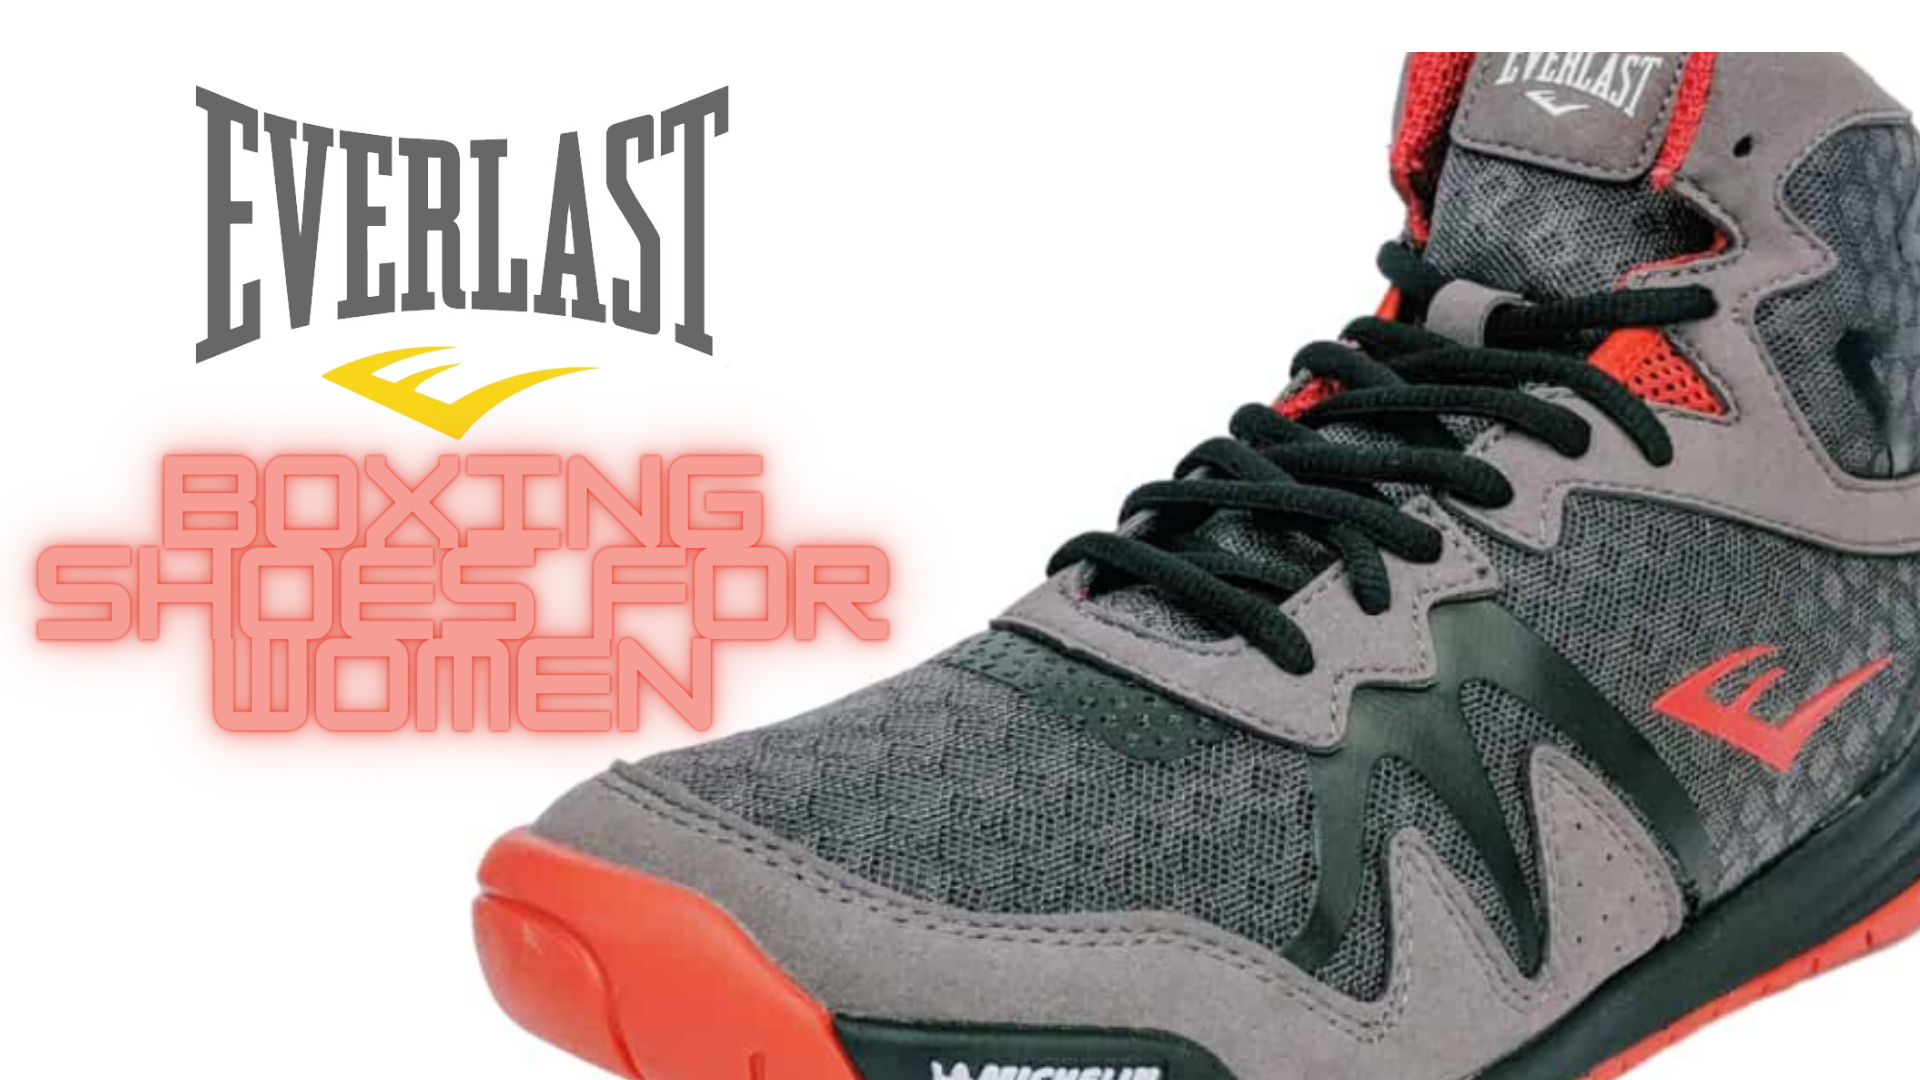 Everlast Boxing Shoes for Women